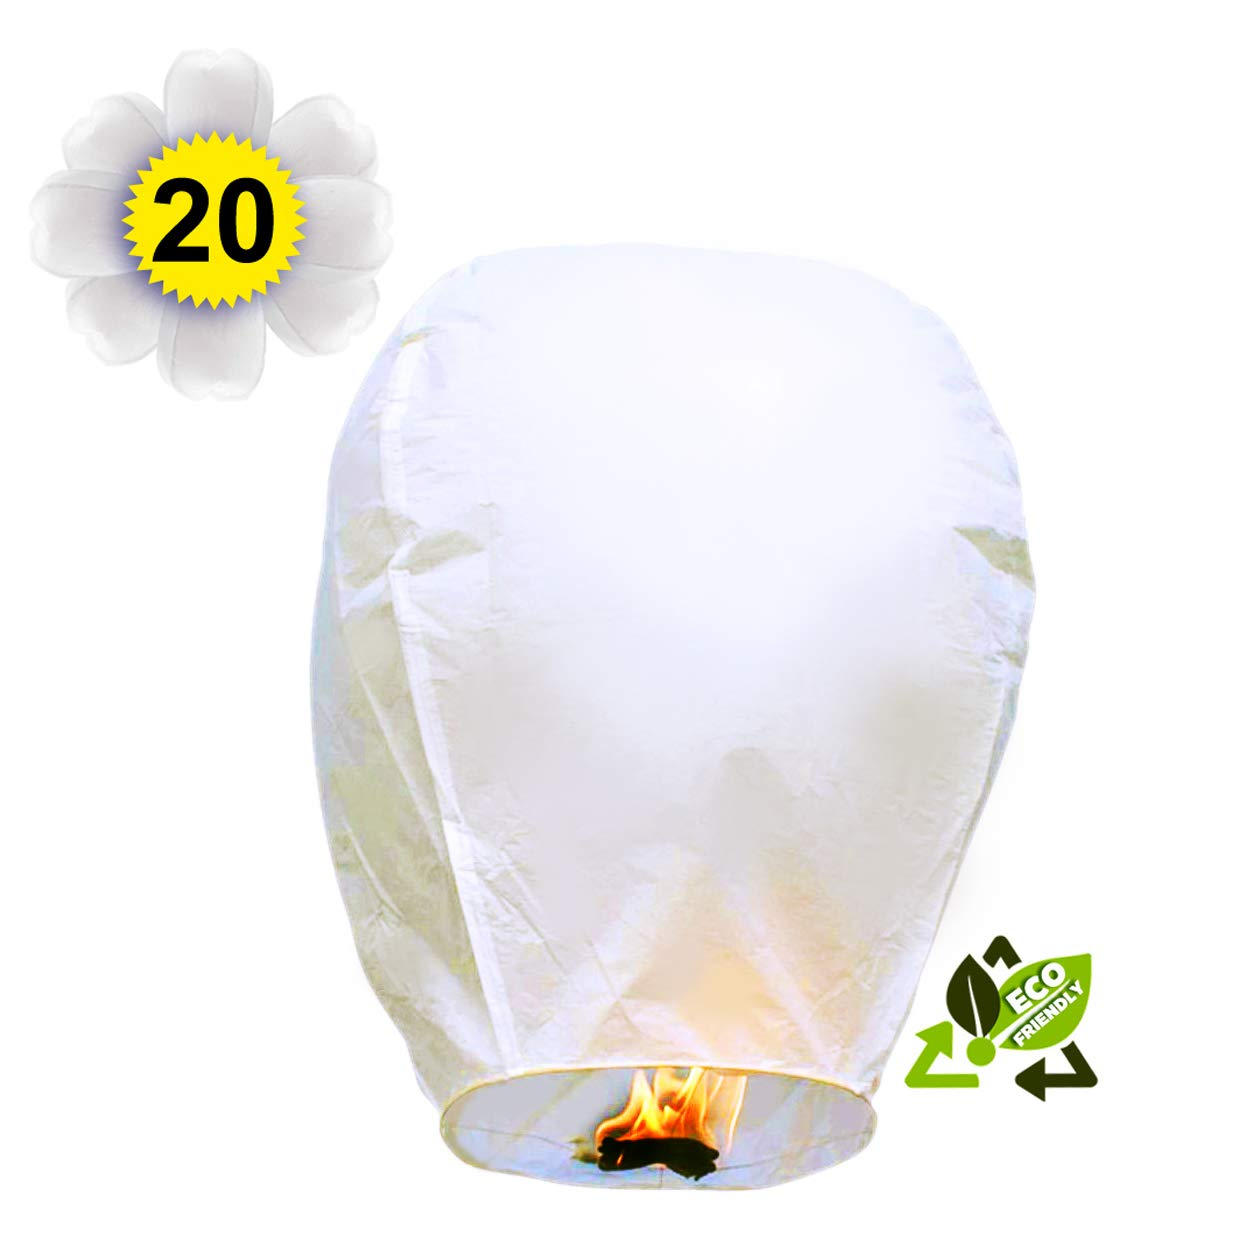 20PACK of Chinese Lanterns ECO Friendly Biodegradable Beautiful Lanterns, White Flying Wish Lanterns for Wedding, Birthdays, Souvenirs by PEACH-T